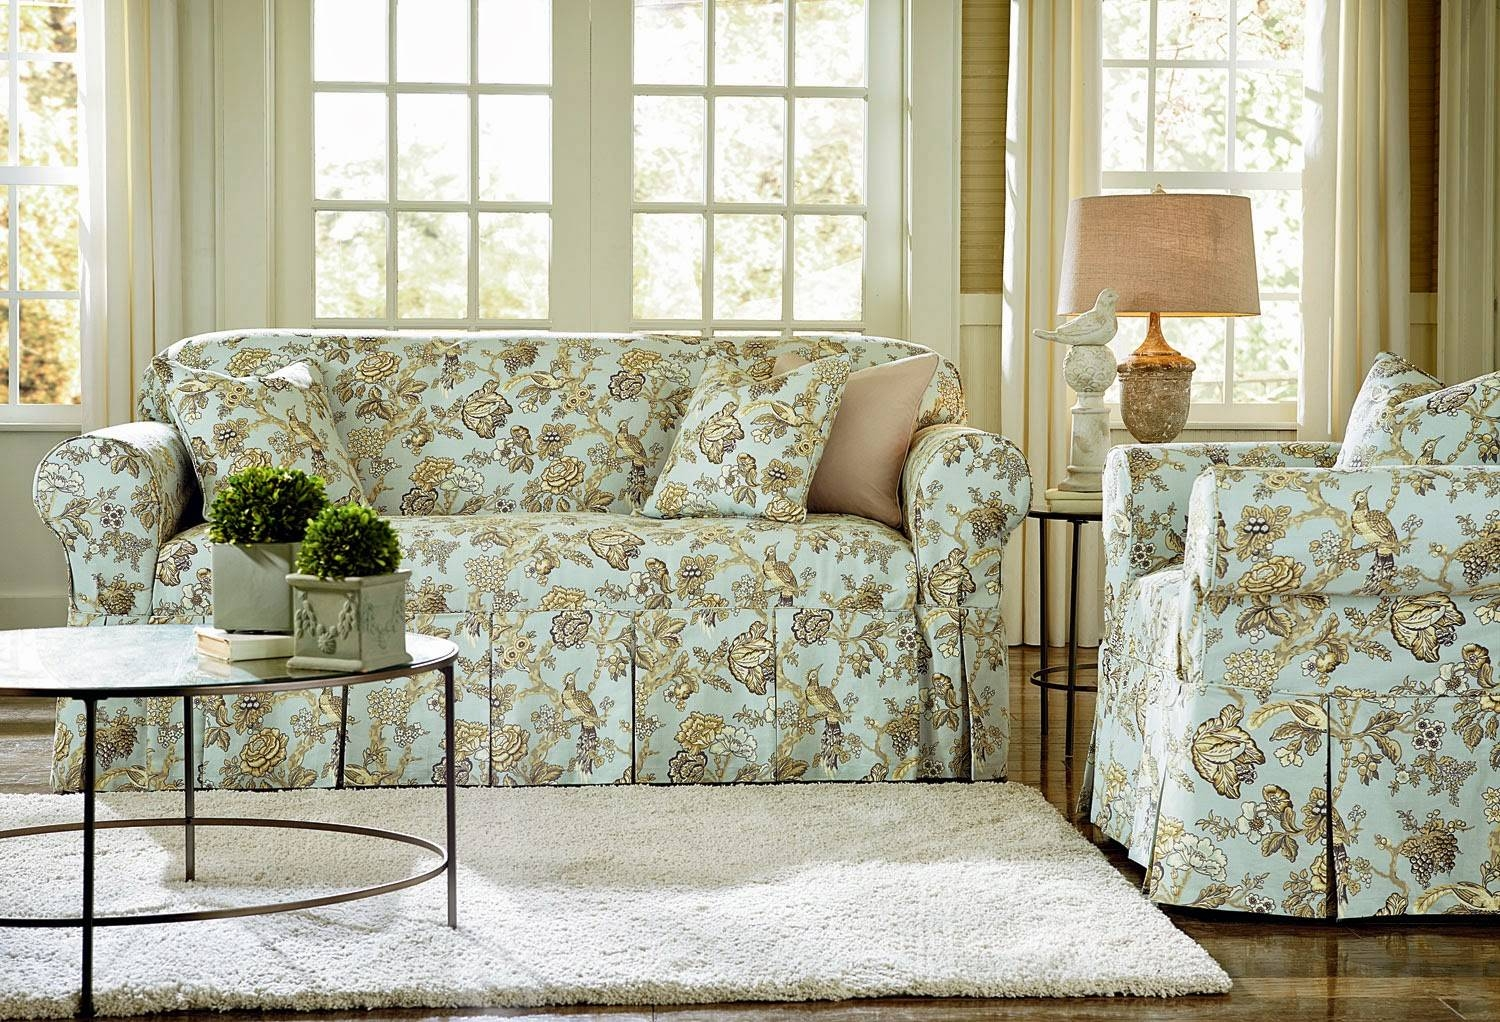 Slipcovered Sofas And Chairs | Sofas Decoration regarding Floral Sofas And Chairs (Image 15 of 15)